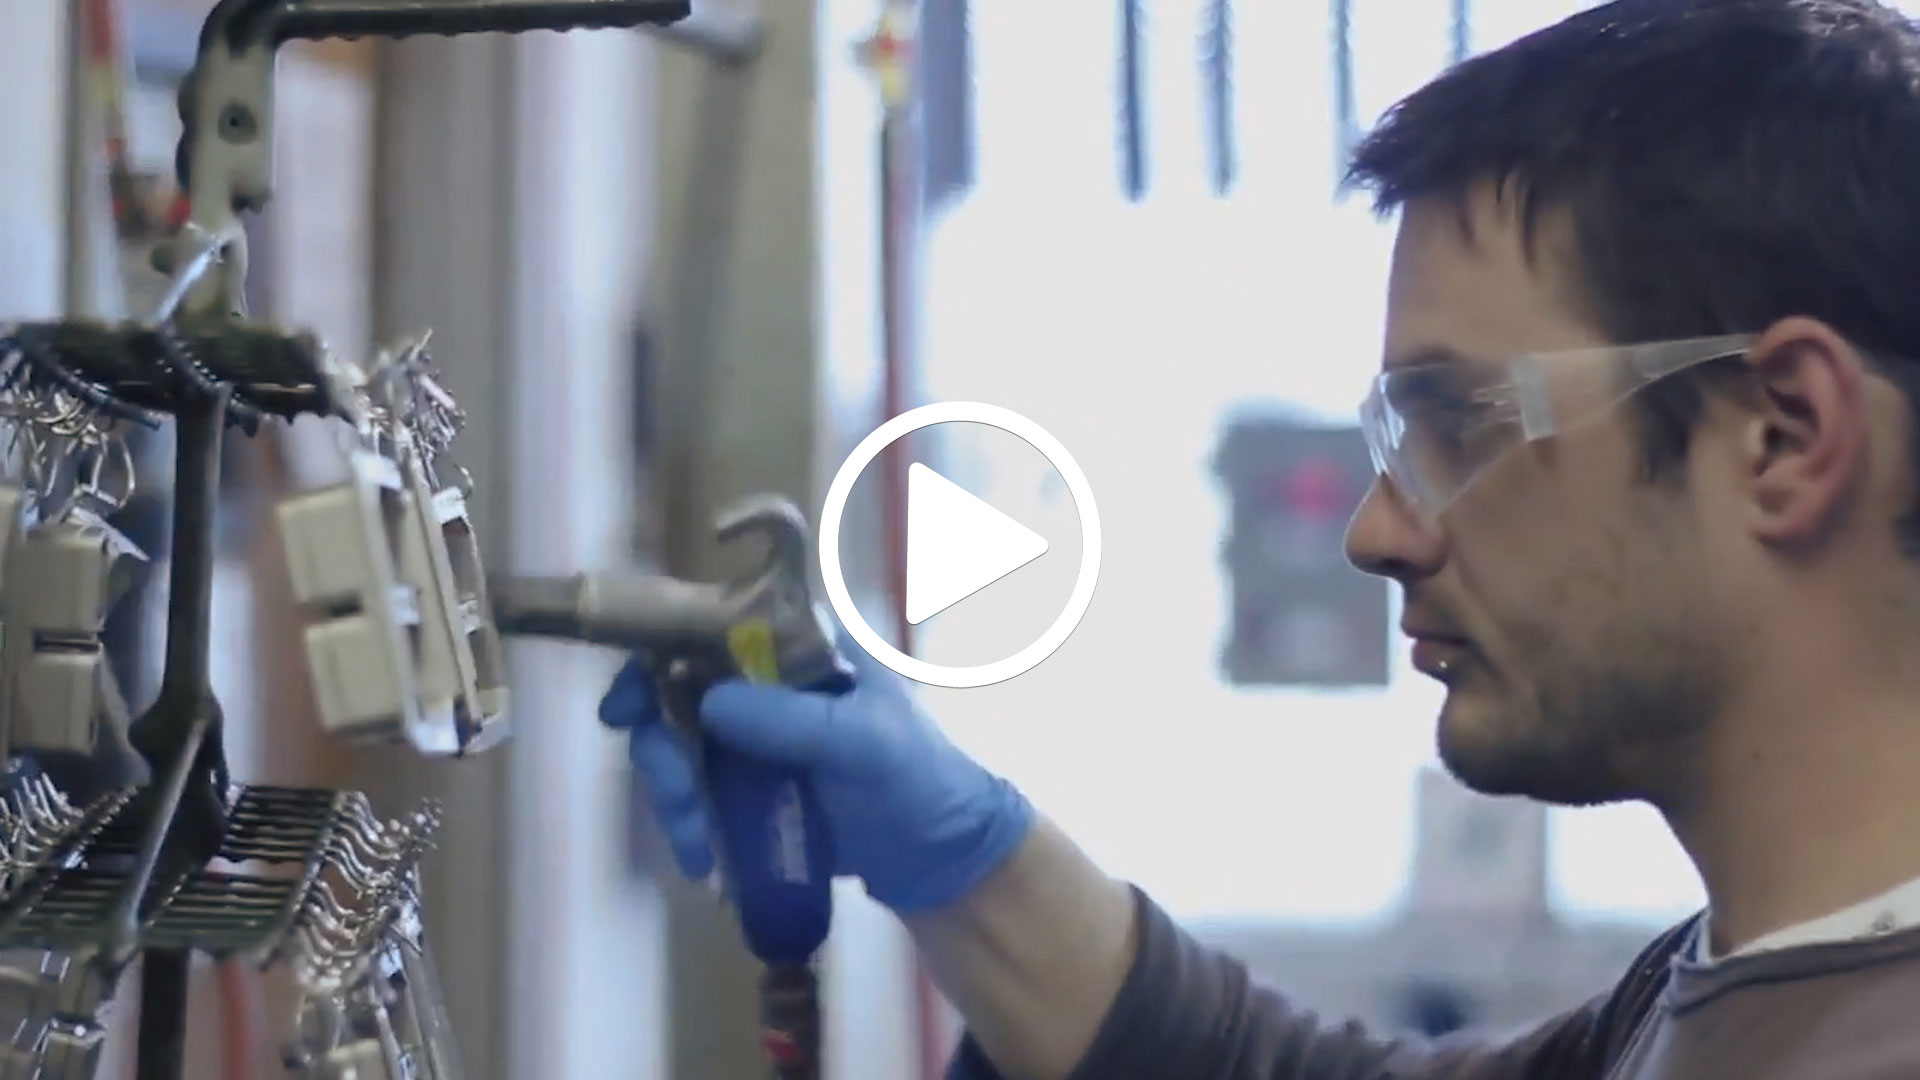 Watch our careers video for available job opening Production Assistants in North Mankato, MN